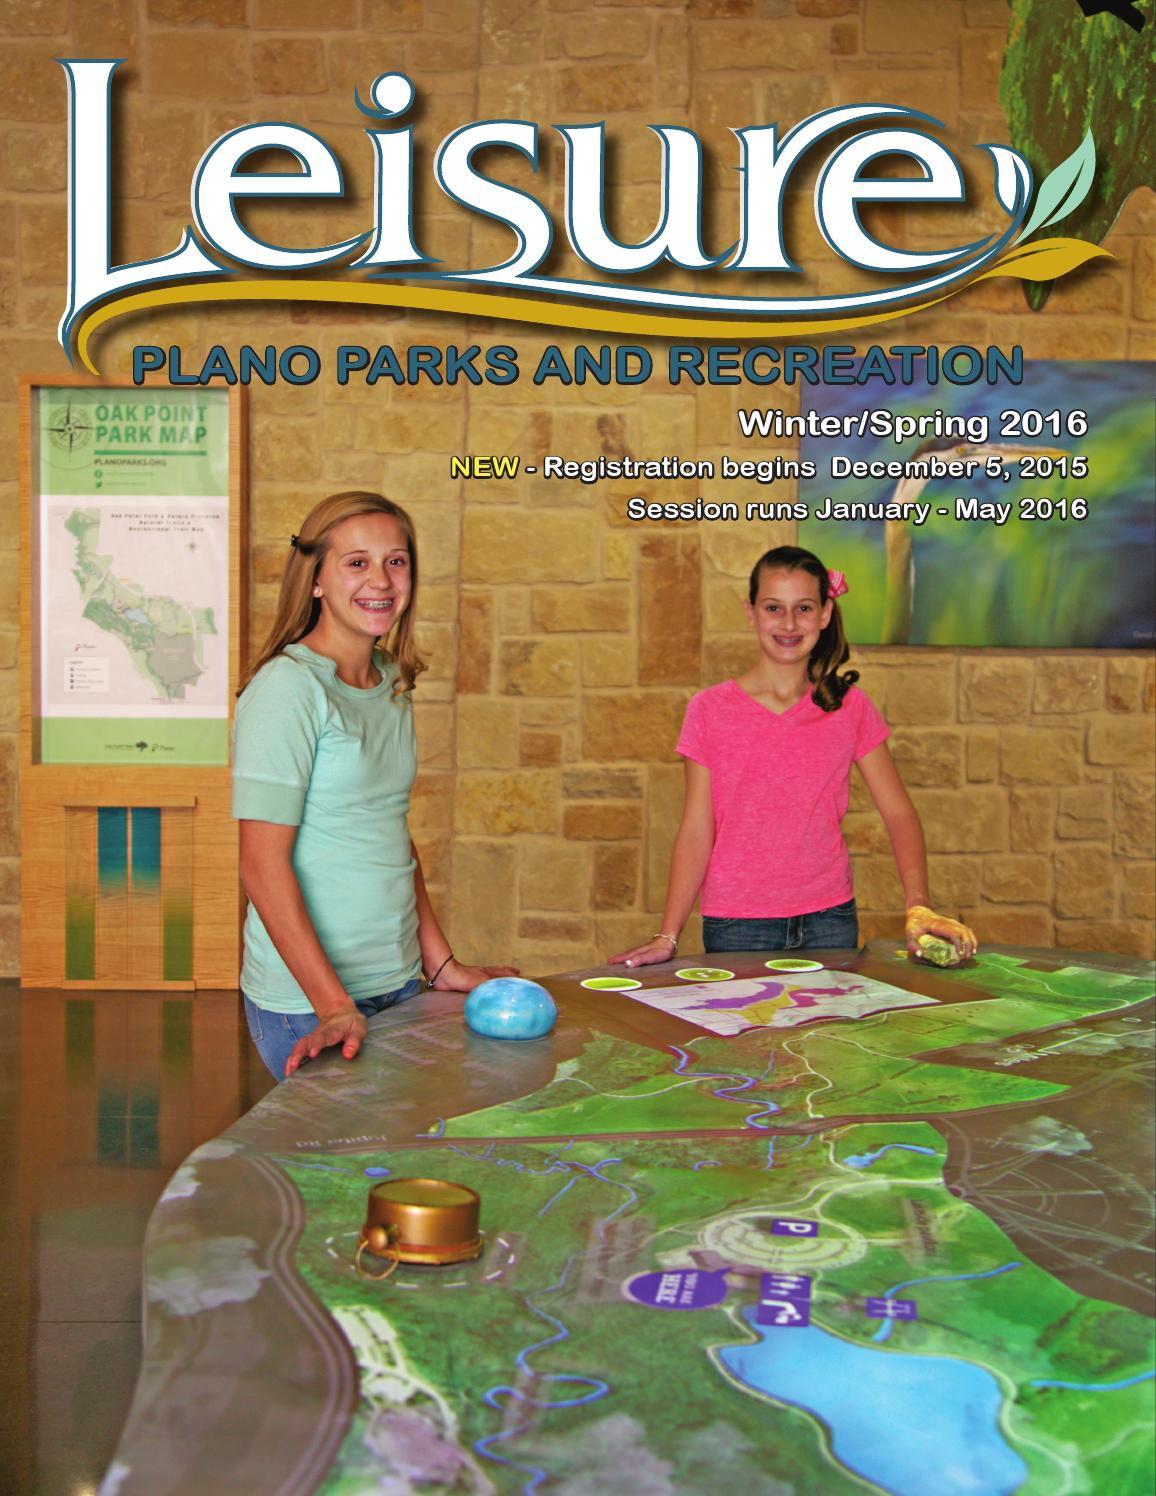 Winter Spring 2016 Leisure Catalog By Plano Parks And Recreation Issuu Bq Wkbk Grade 3 Ages 8 9